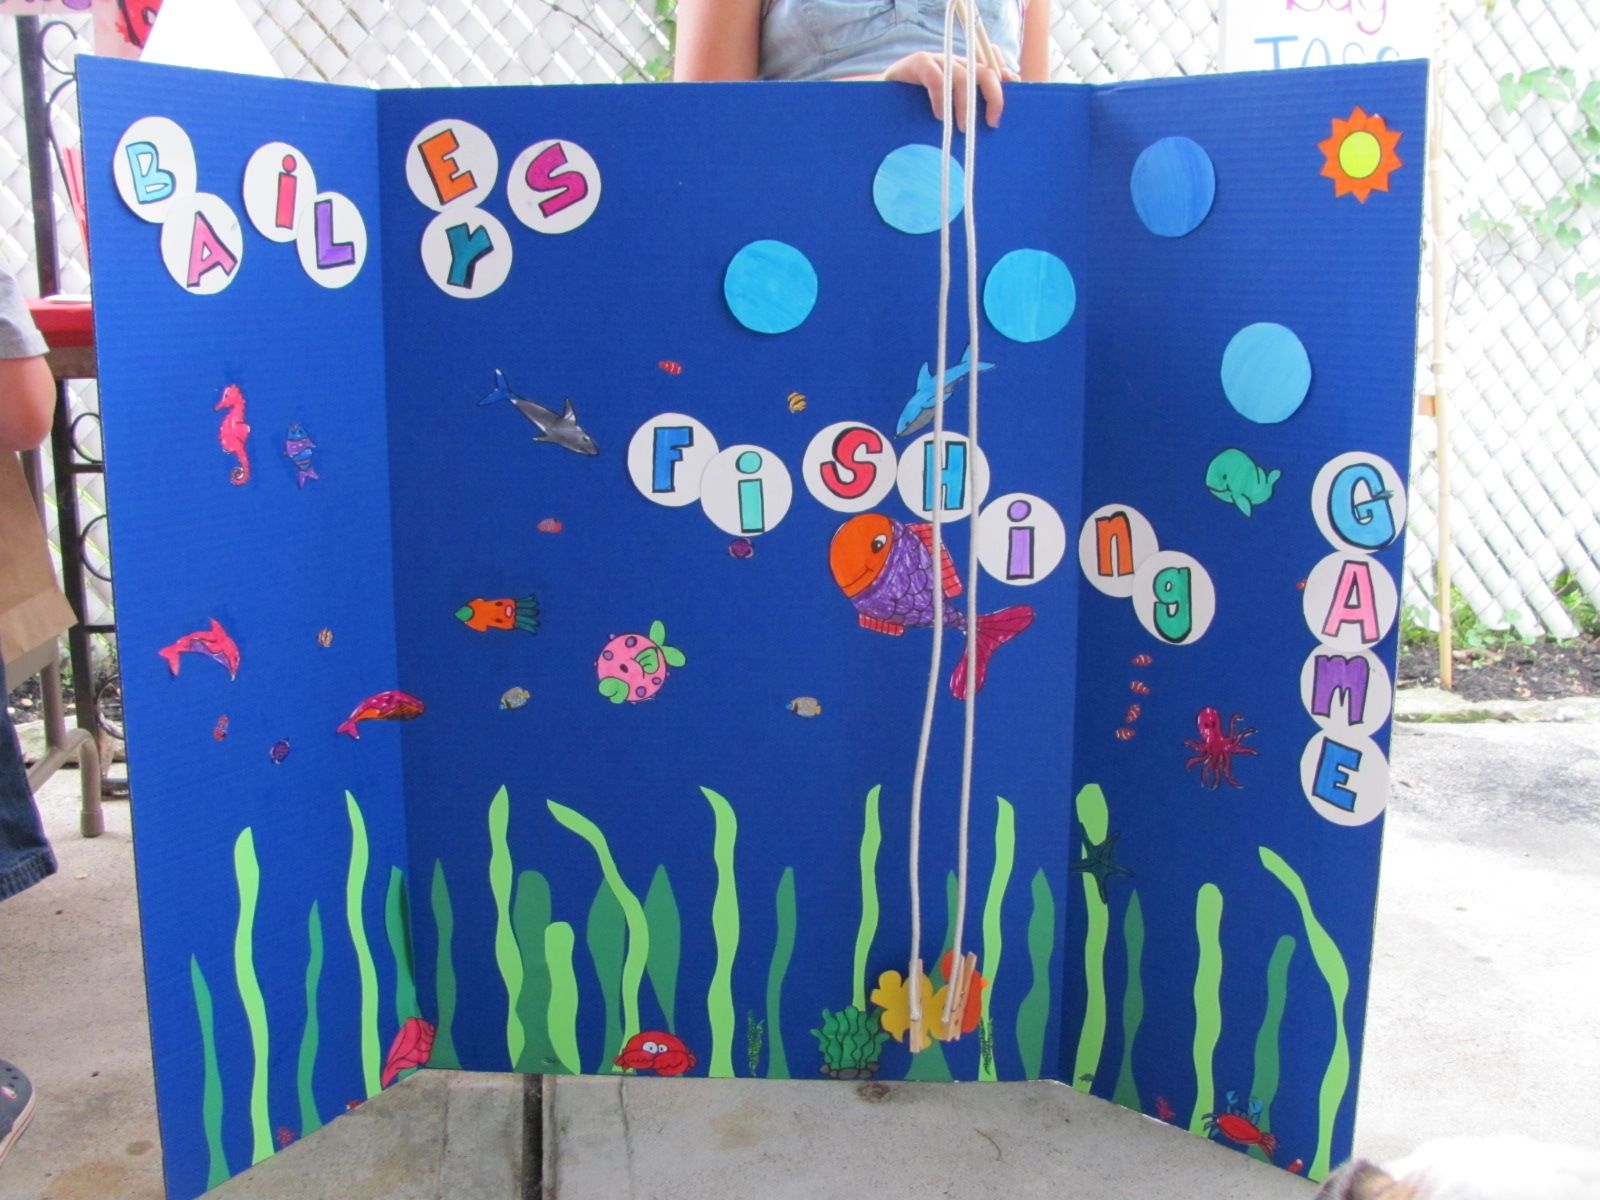 Tri Fold Poster Board In Blue I Cut Out Circles To Look Like Bubbles With Her Name On It Dow Rods Rope And Clothes Pins